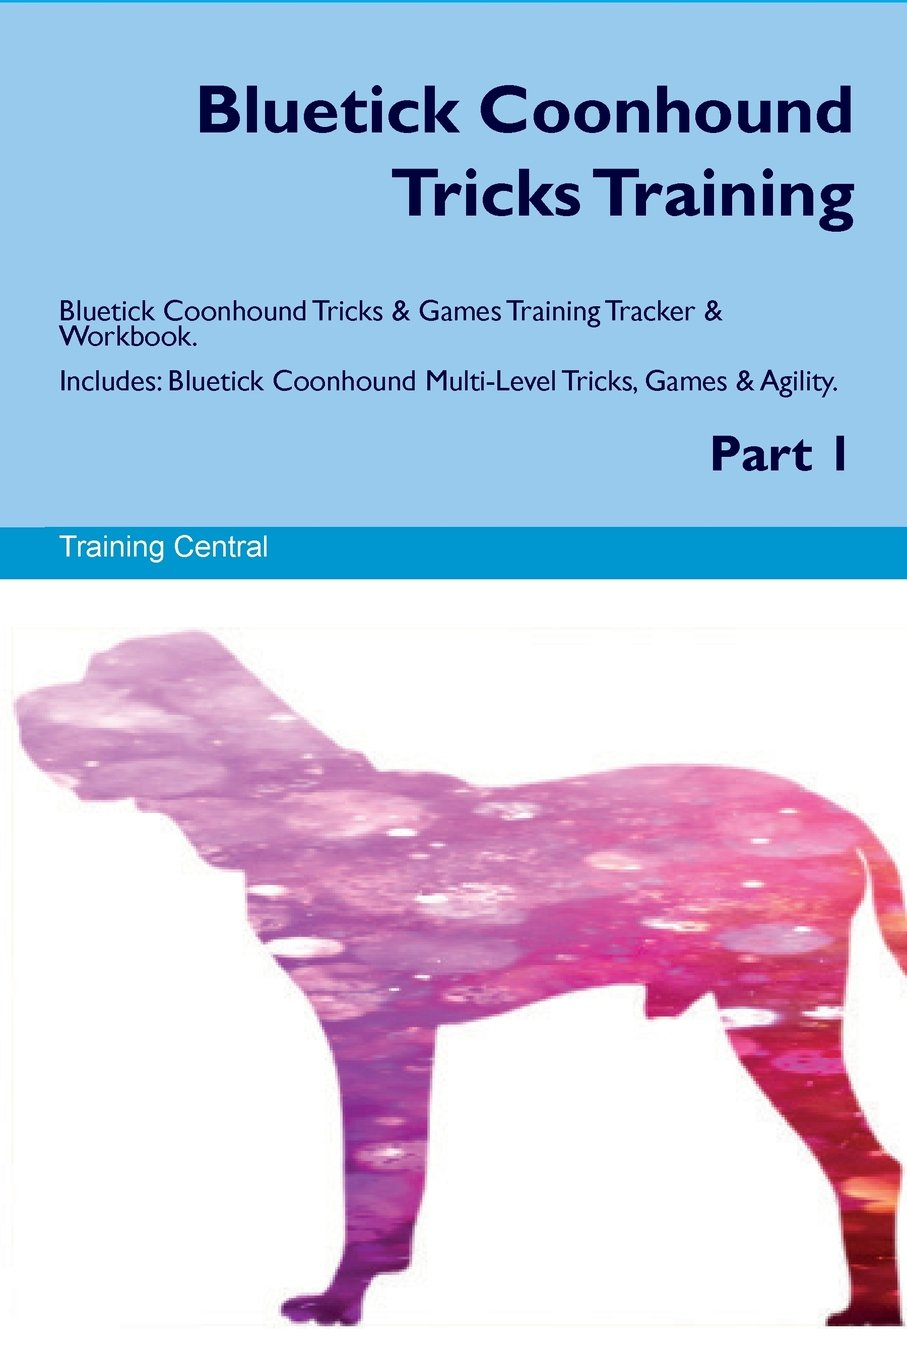 Download Bluetick Coonhound Tricks Training Bluetick Coonhound Tricks & Games Training Tracker & Workbook. Includes: Bluetick Coonhound Multi-Level Tricks, Games & Agility. Part 1 PDF